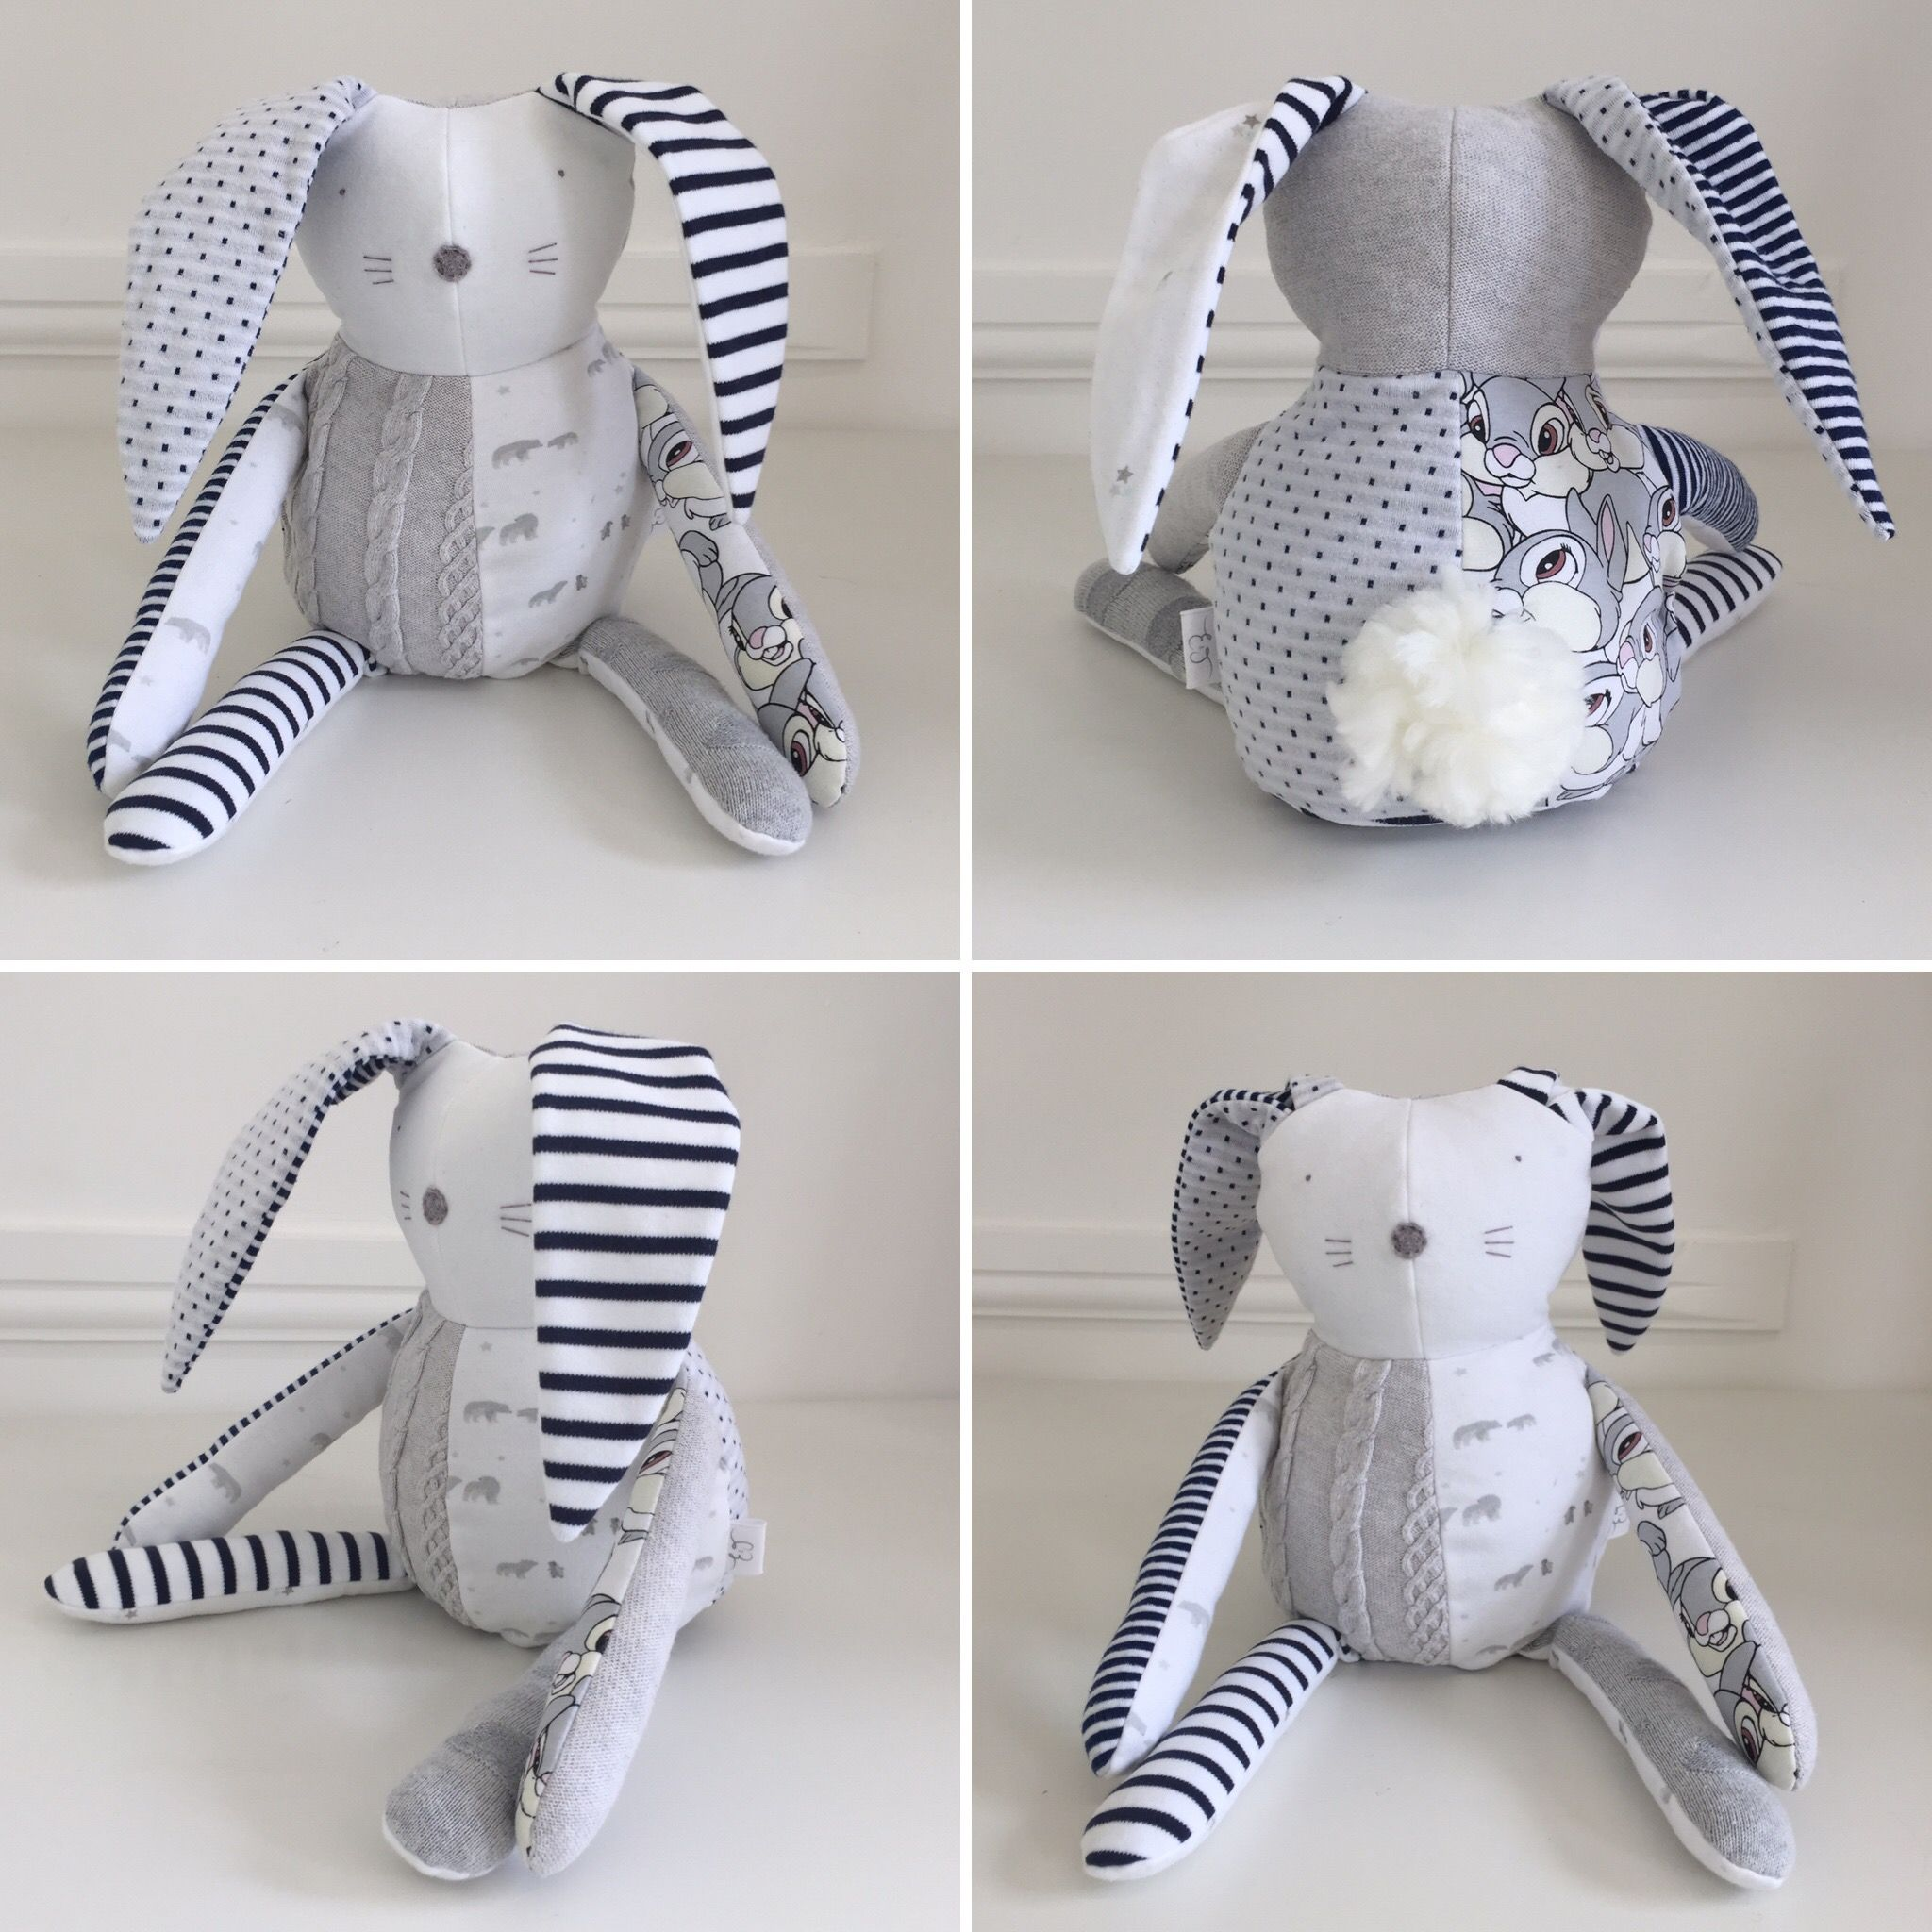 Memory bunny soft toy made from recycled preloved baby ...